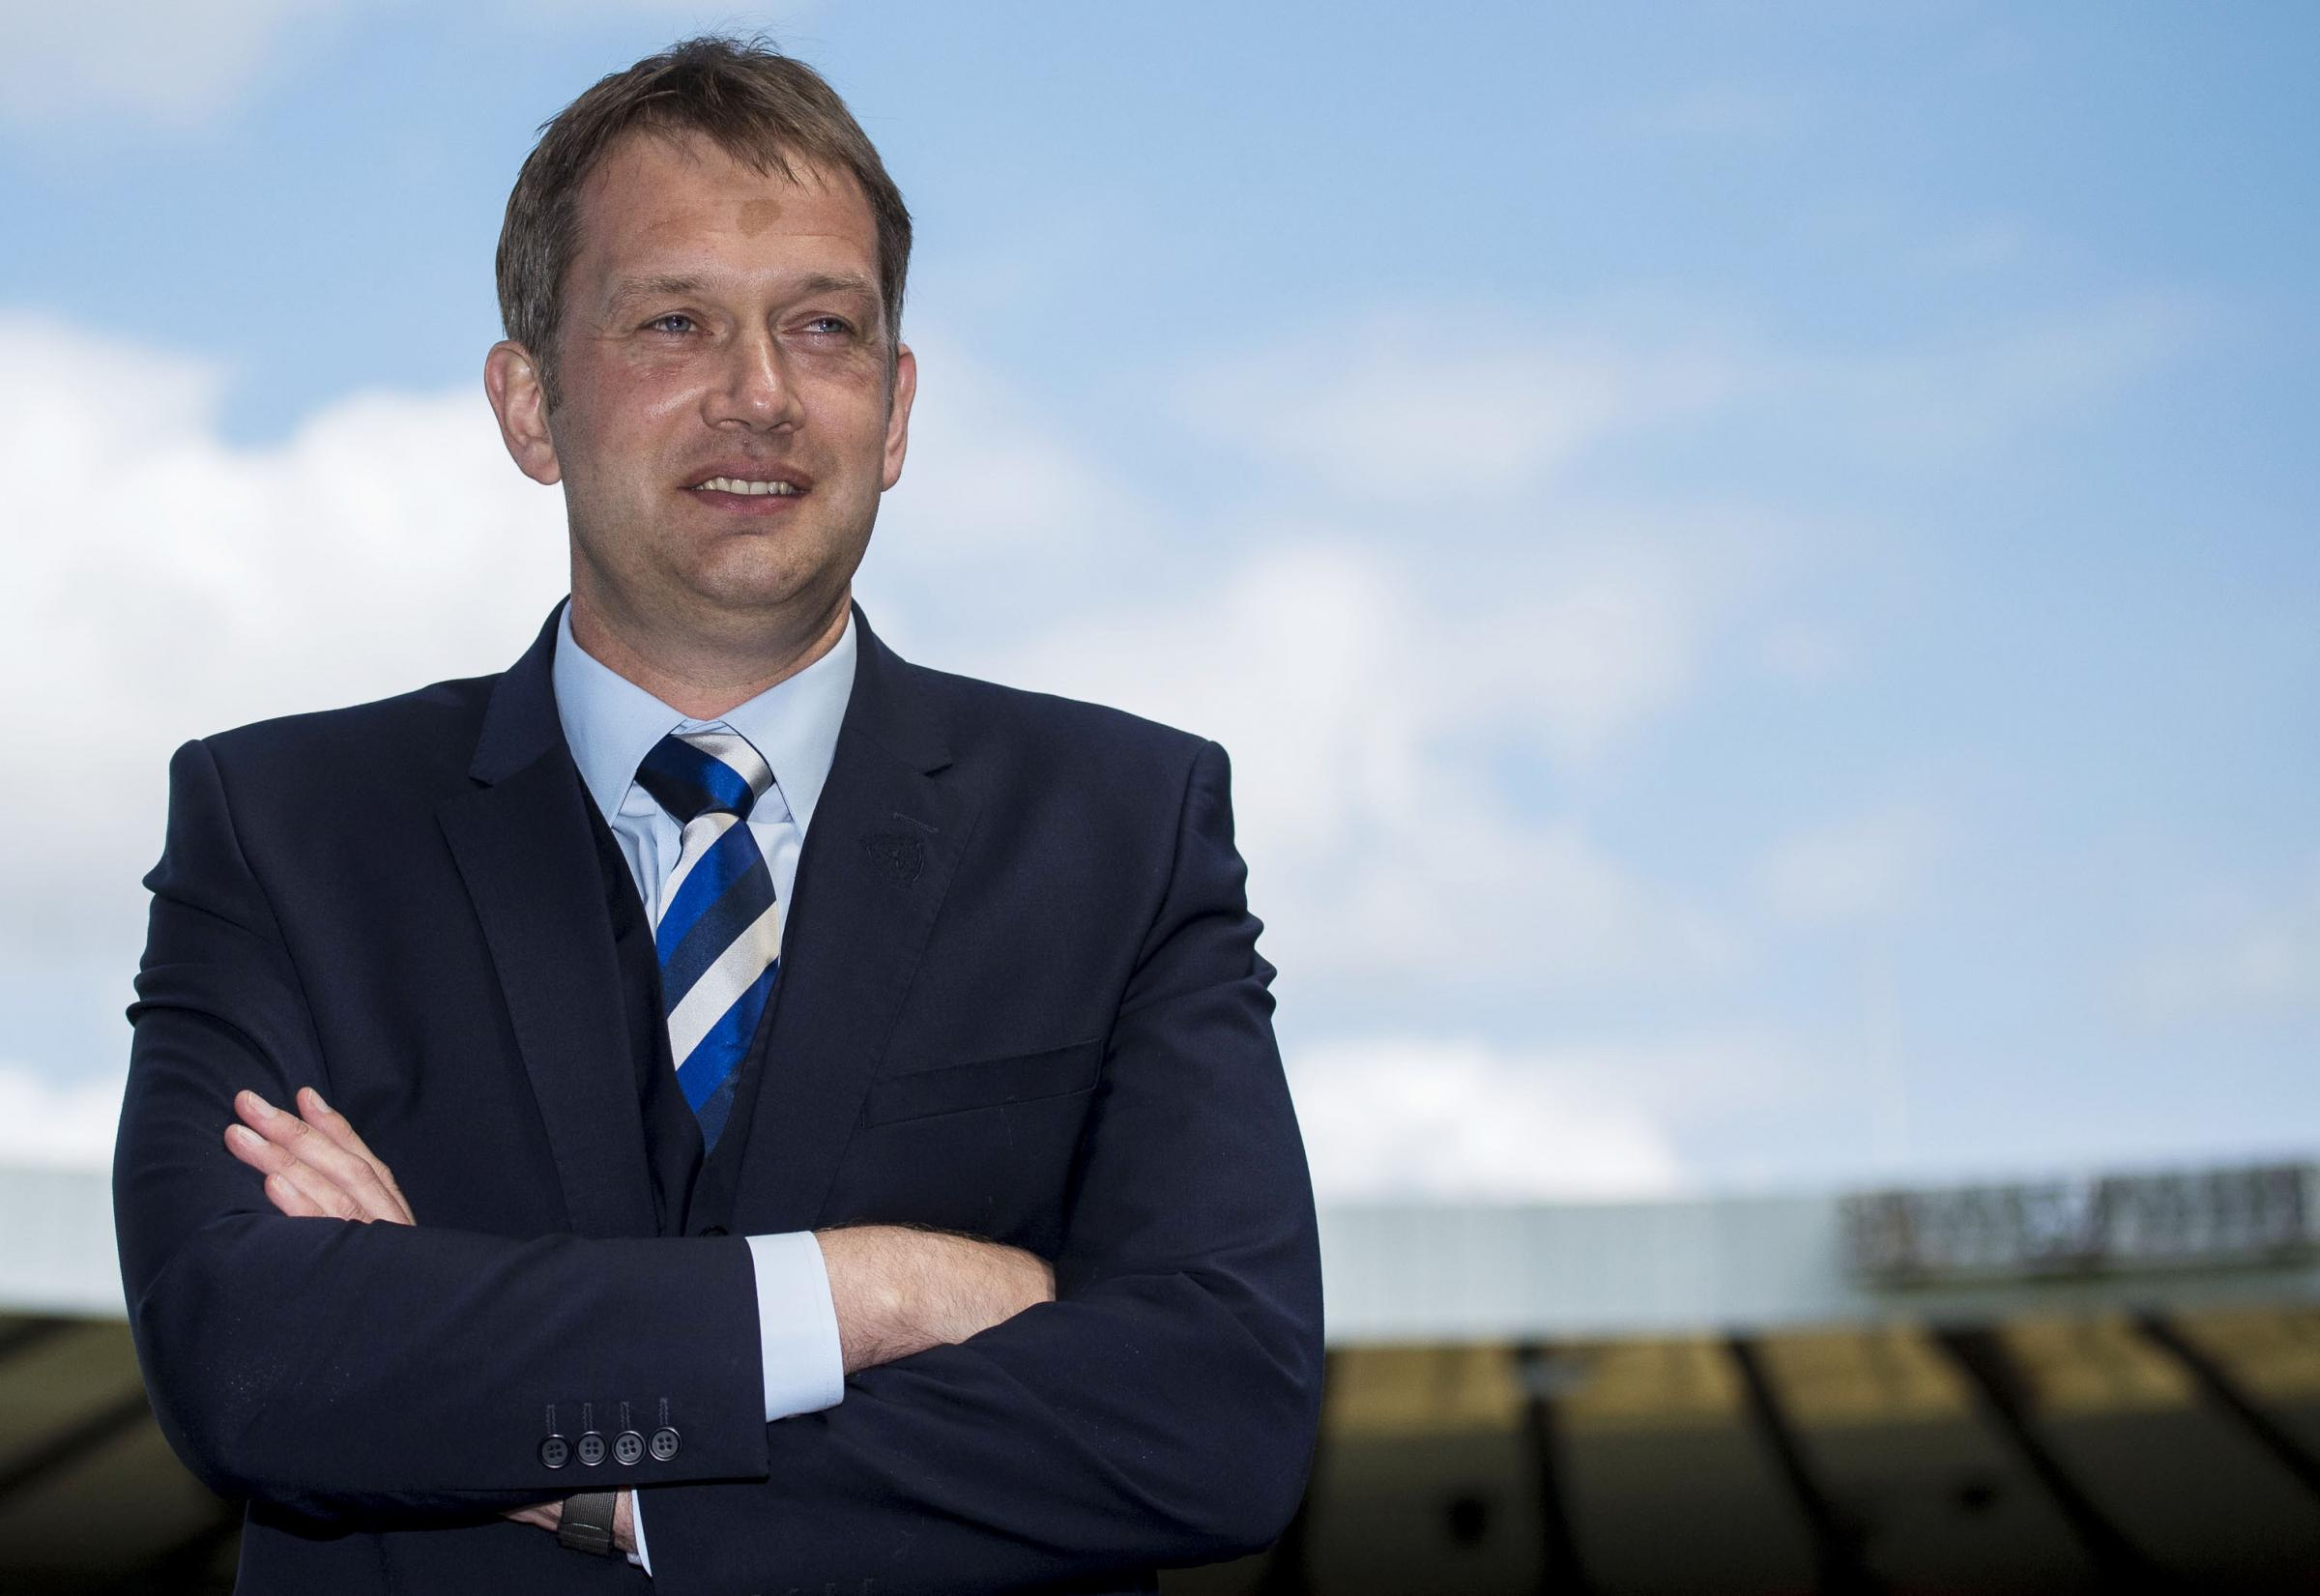 Ian Maxwell is buoyant about the state of the Scottish game as he takes over the helm as chief executive of the SFA.